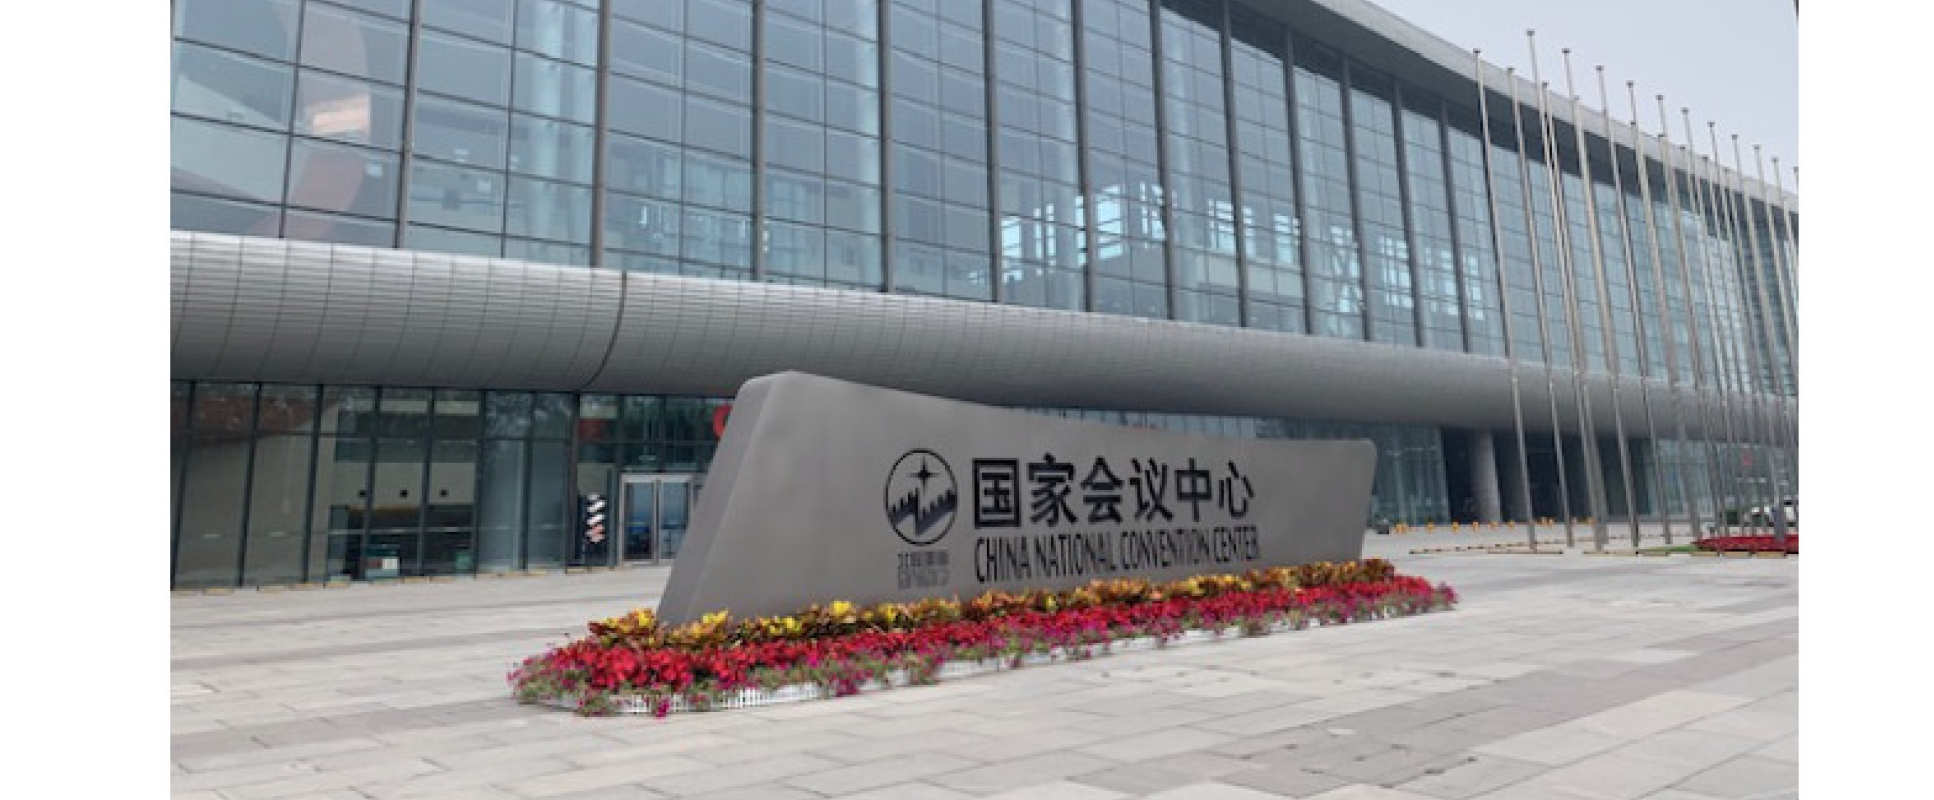 external shot of conference centre in china